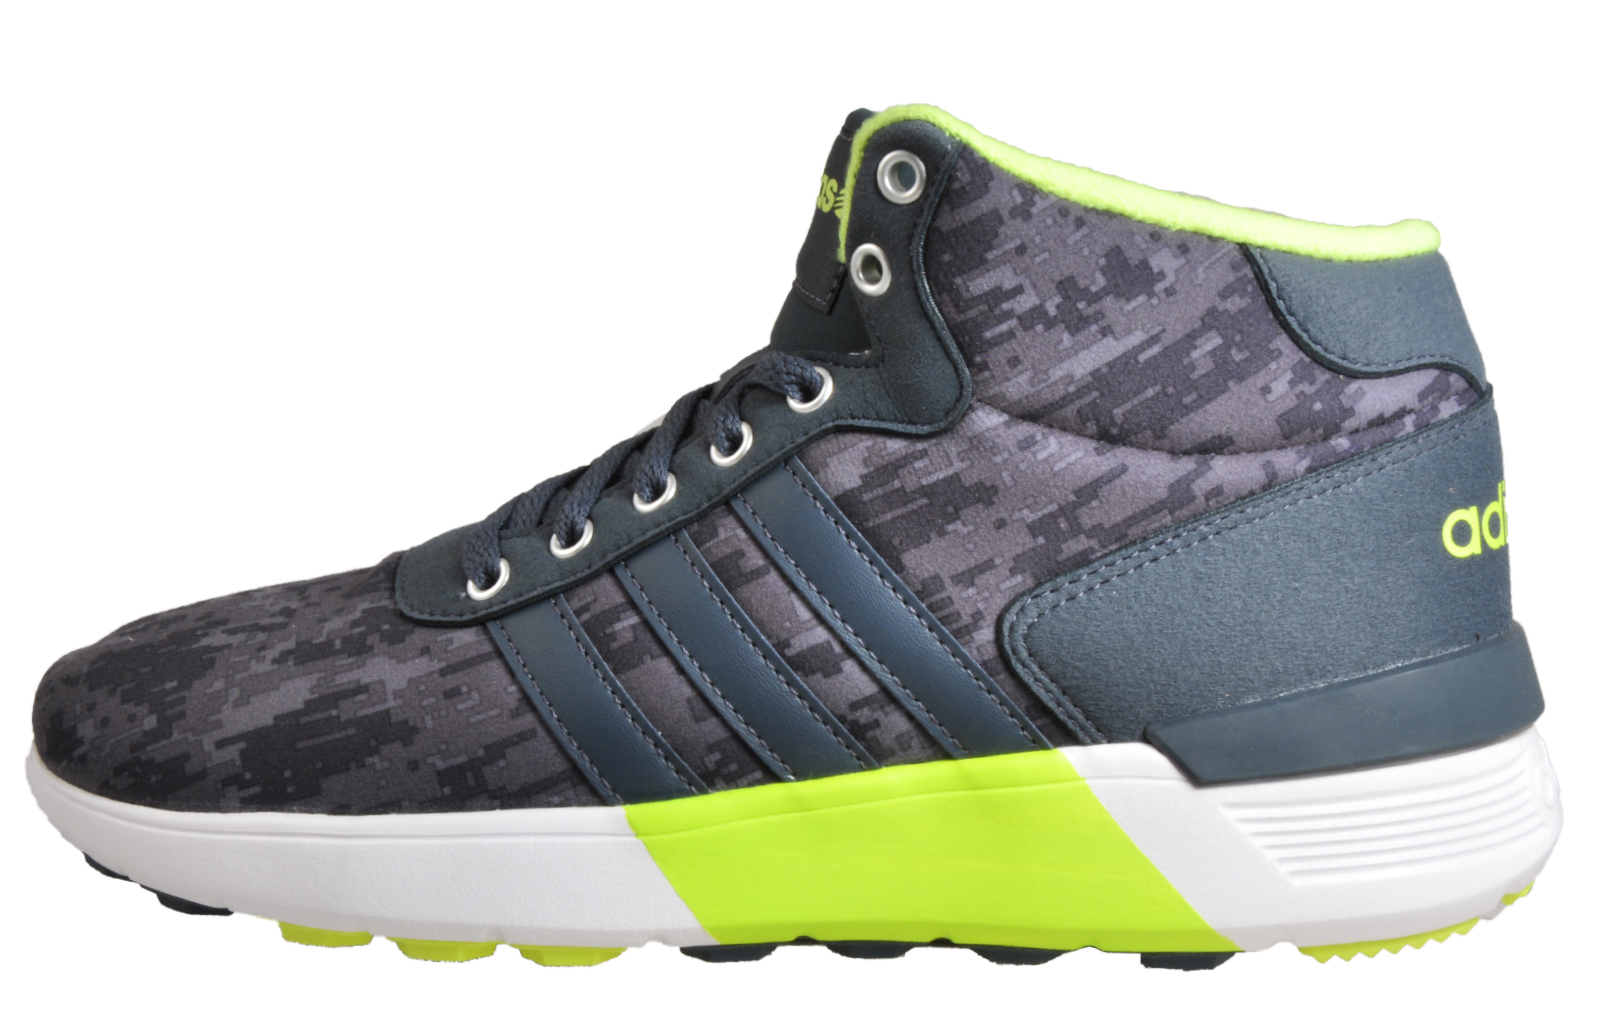 sports shoes b7d0a a760f Adidas Lite Racer Mid Mens Athletic Fashion Gym Trainers Sneakers Grey.  Manufacturers code F98725